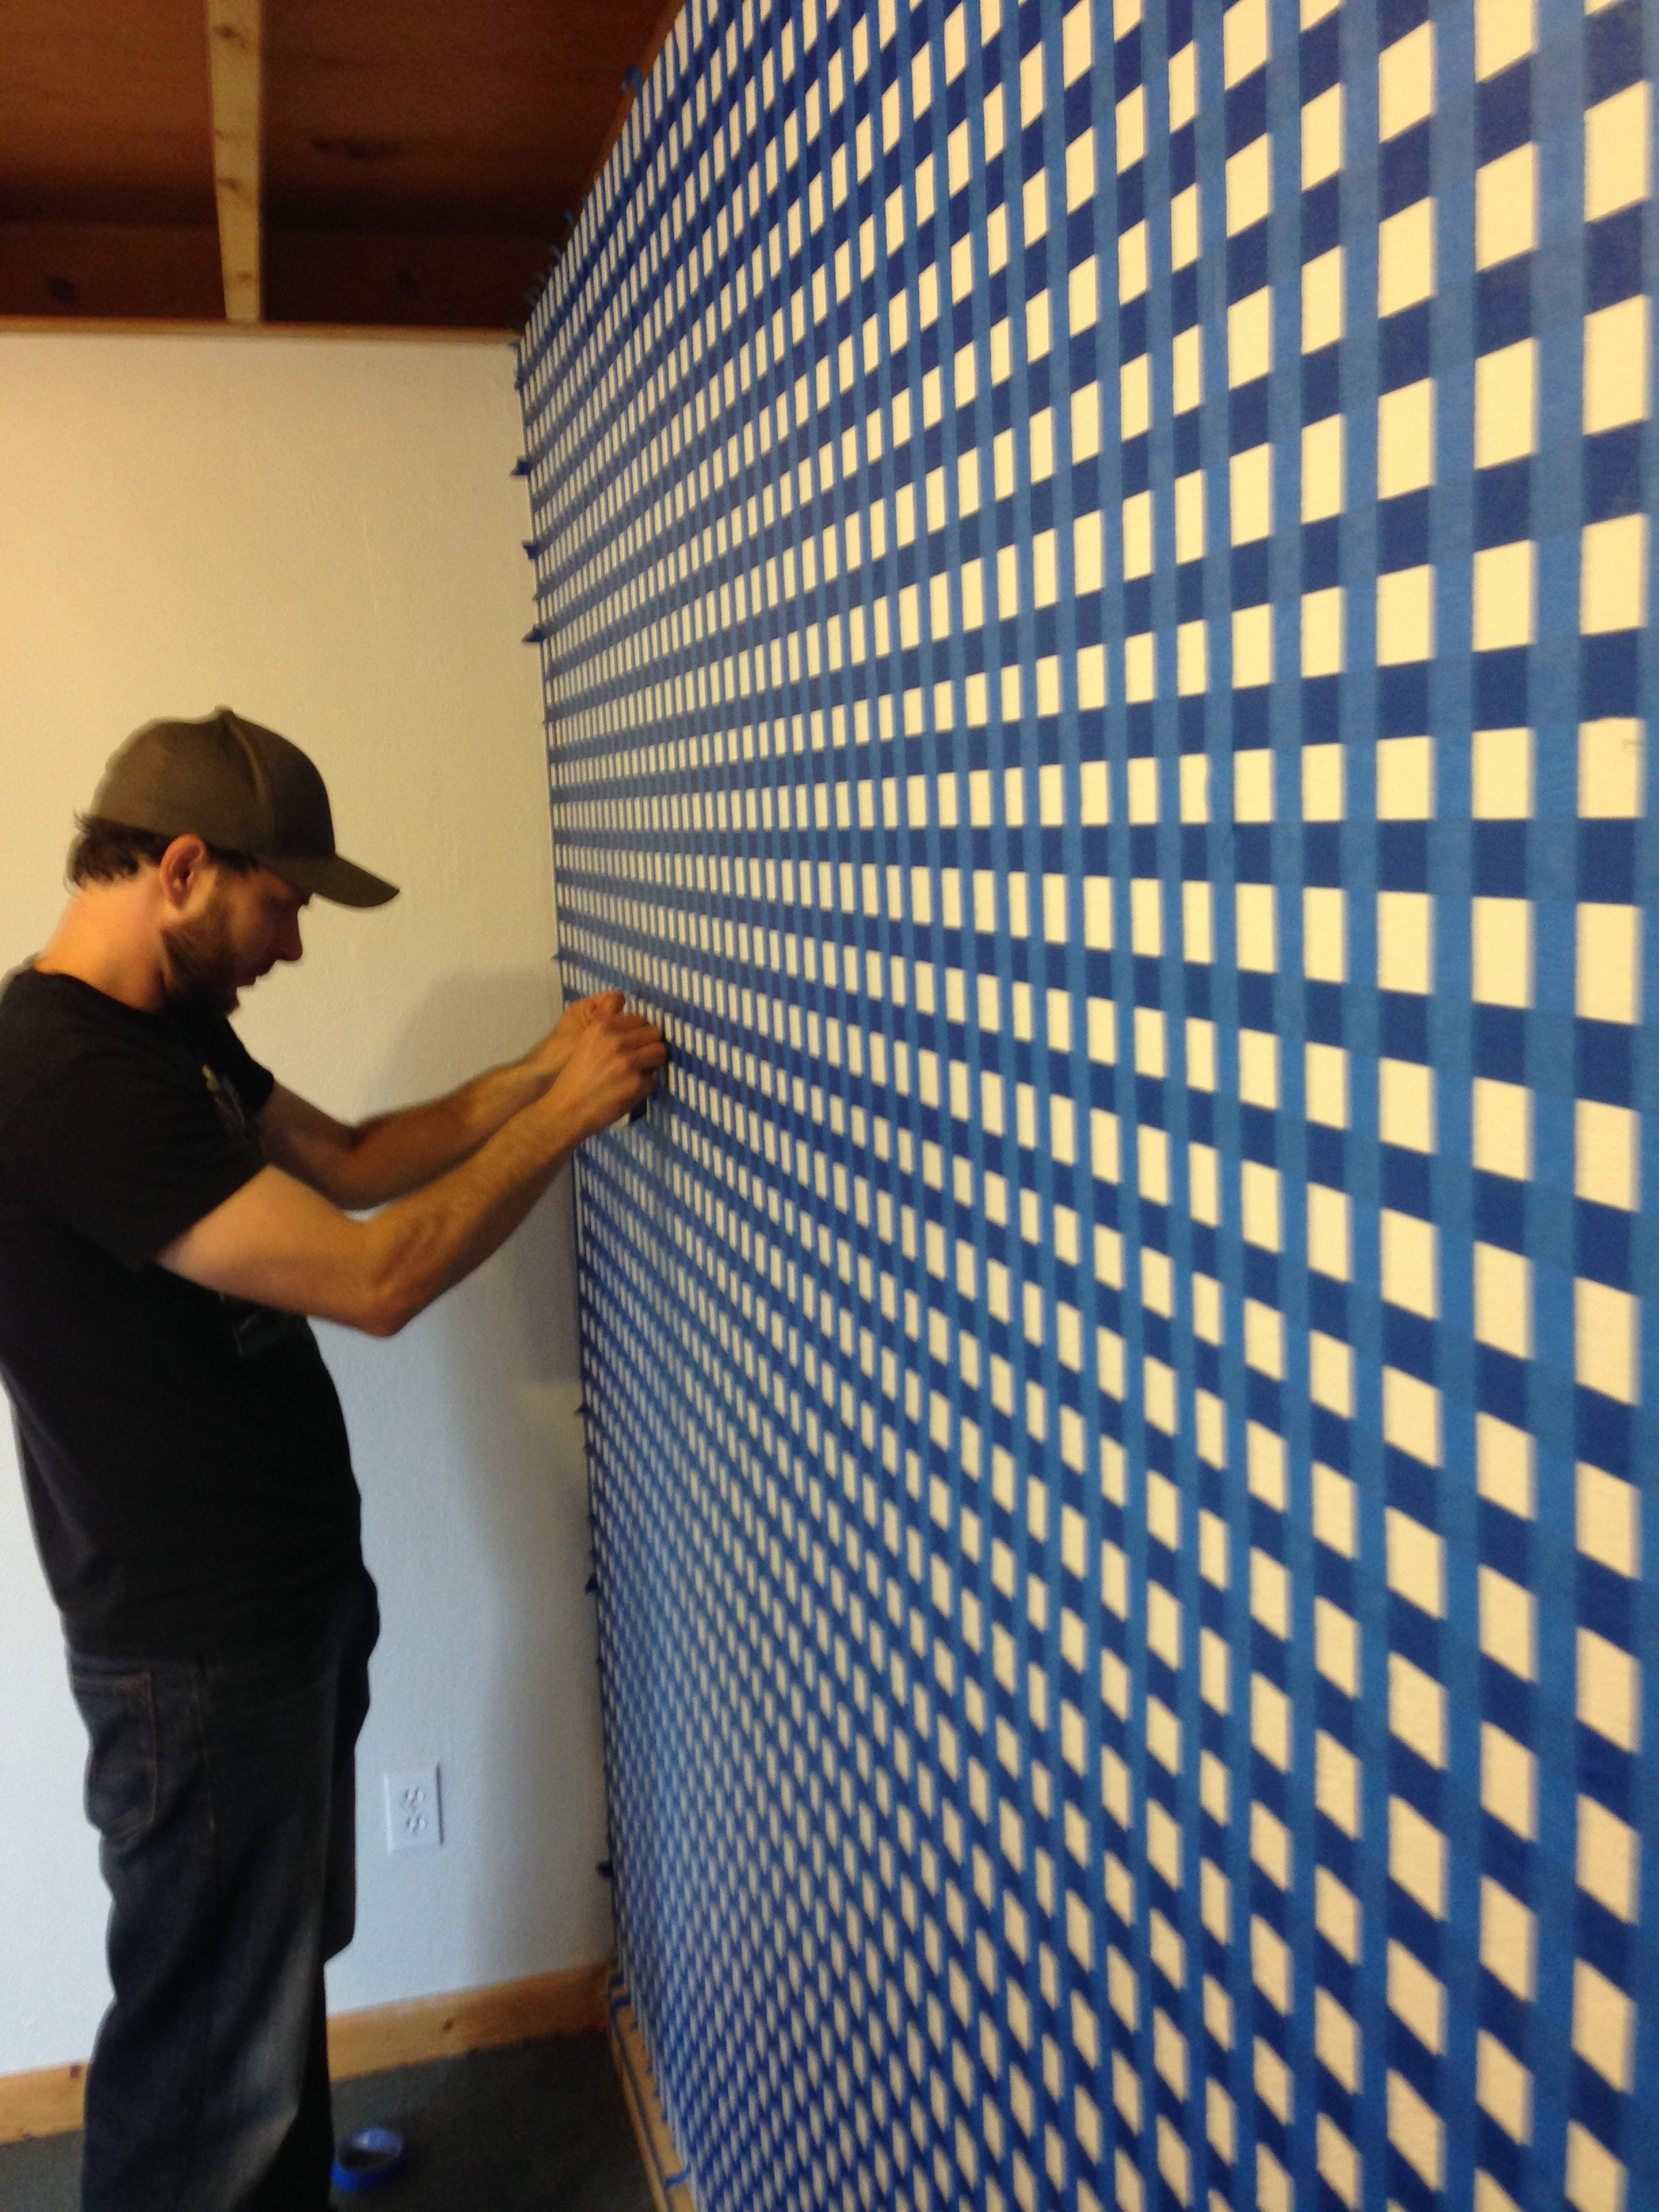 A wall in the studio was market with tape to create a reference grid